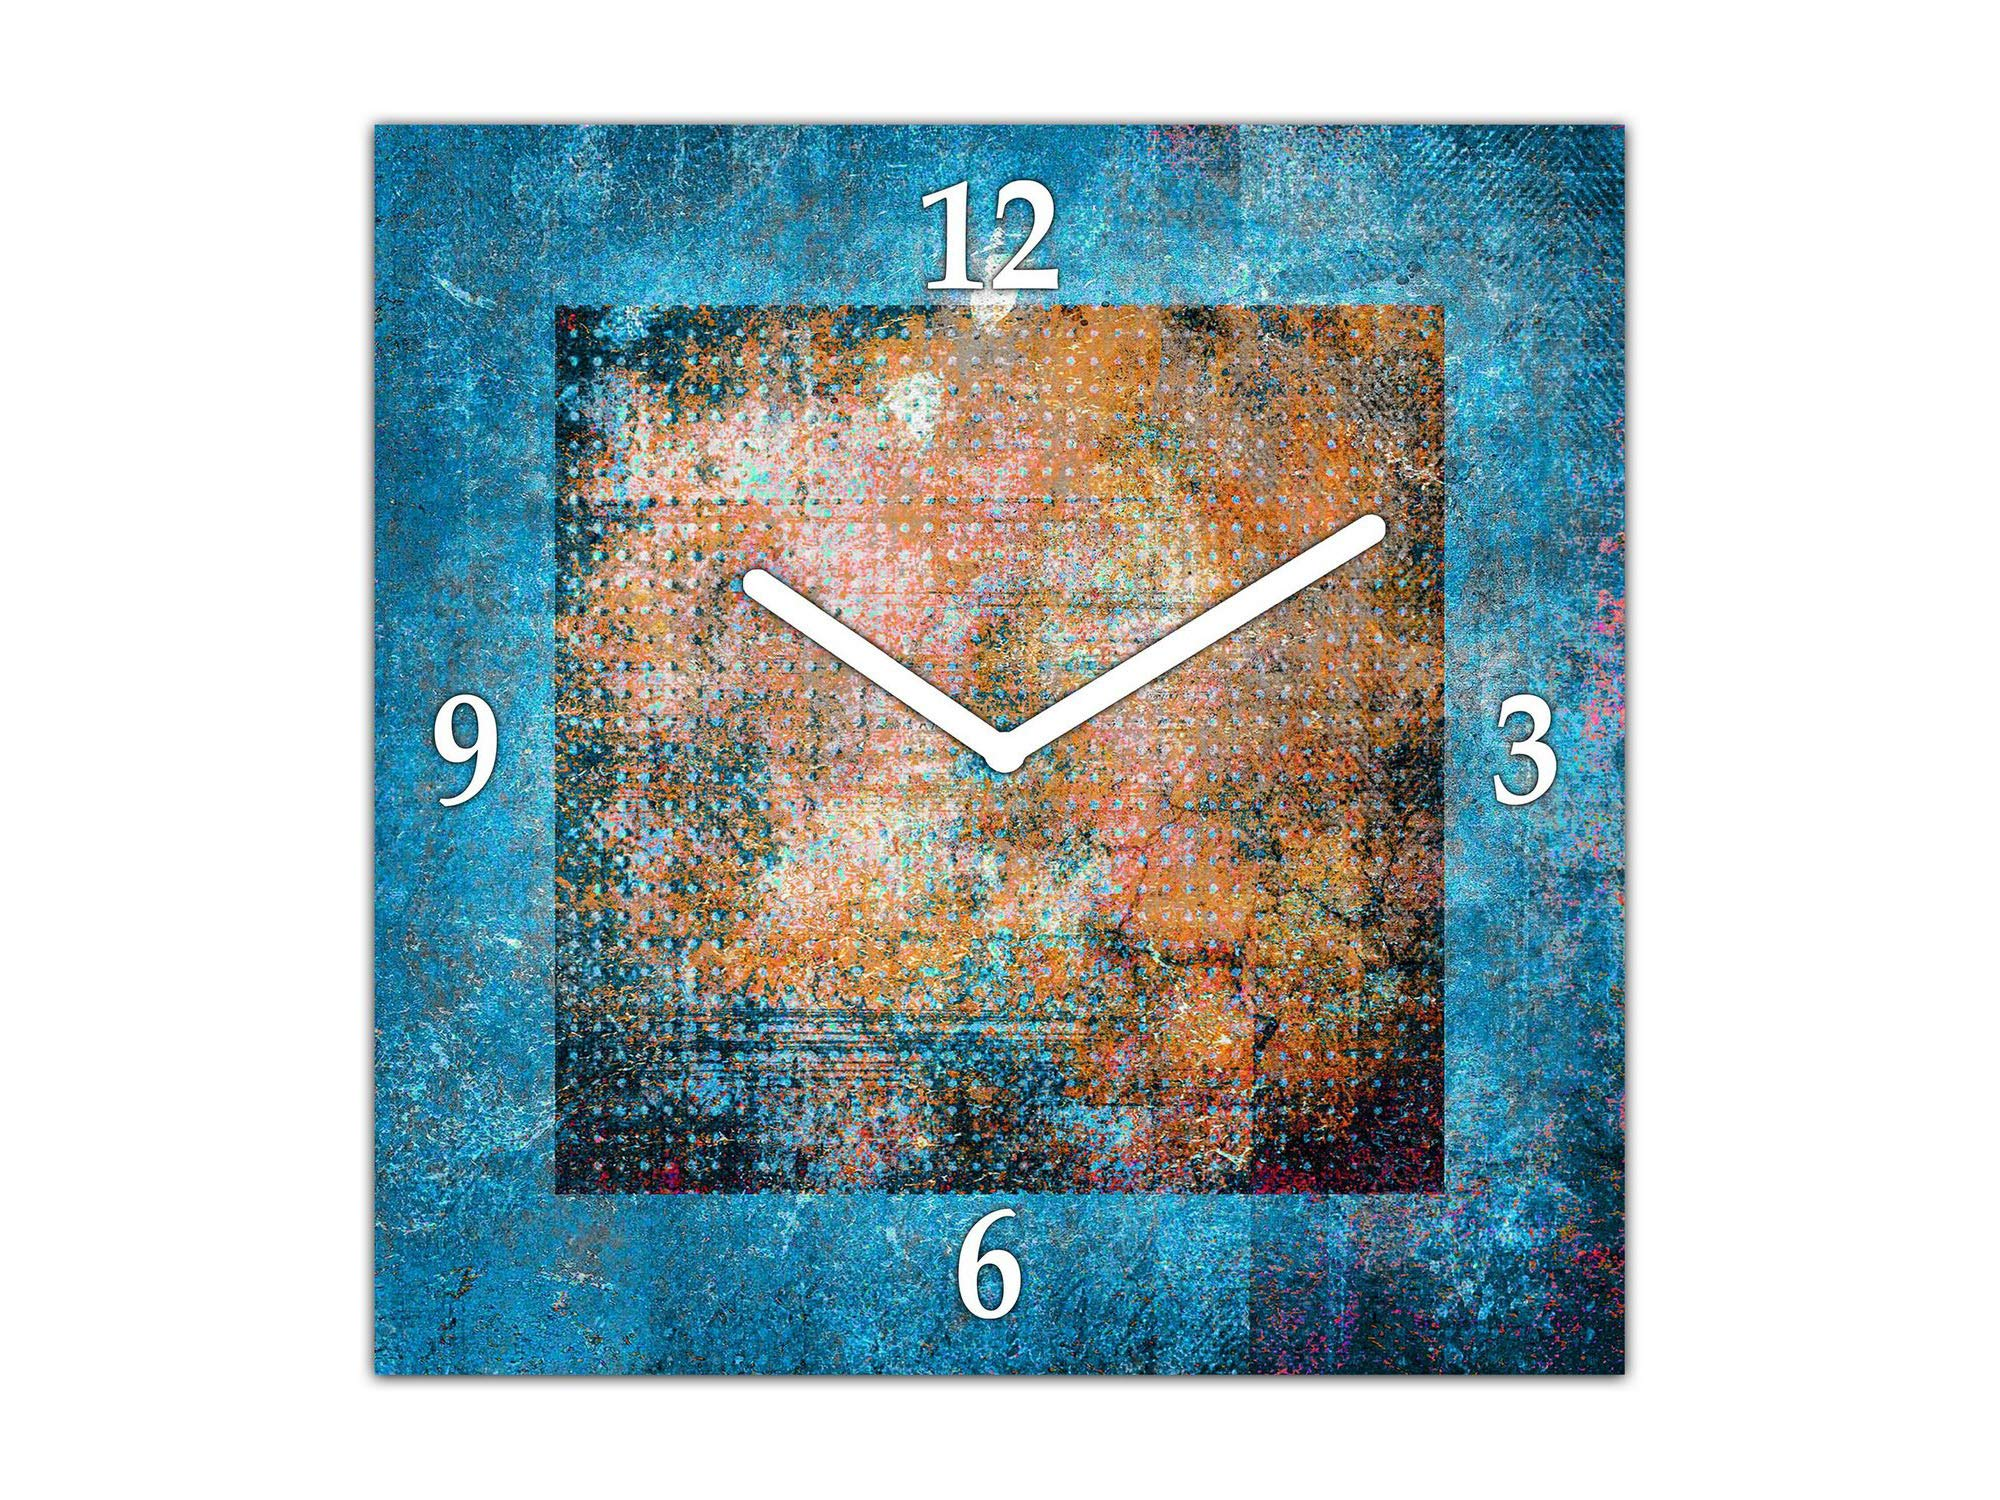 Concept Crystal Glass Wall Clock – Wall Clock Unique Design – Silent Clock for Home Décor TG10B Surfaces Series: Amazing Wallpaper